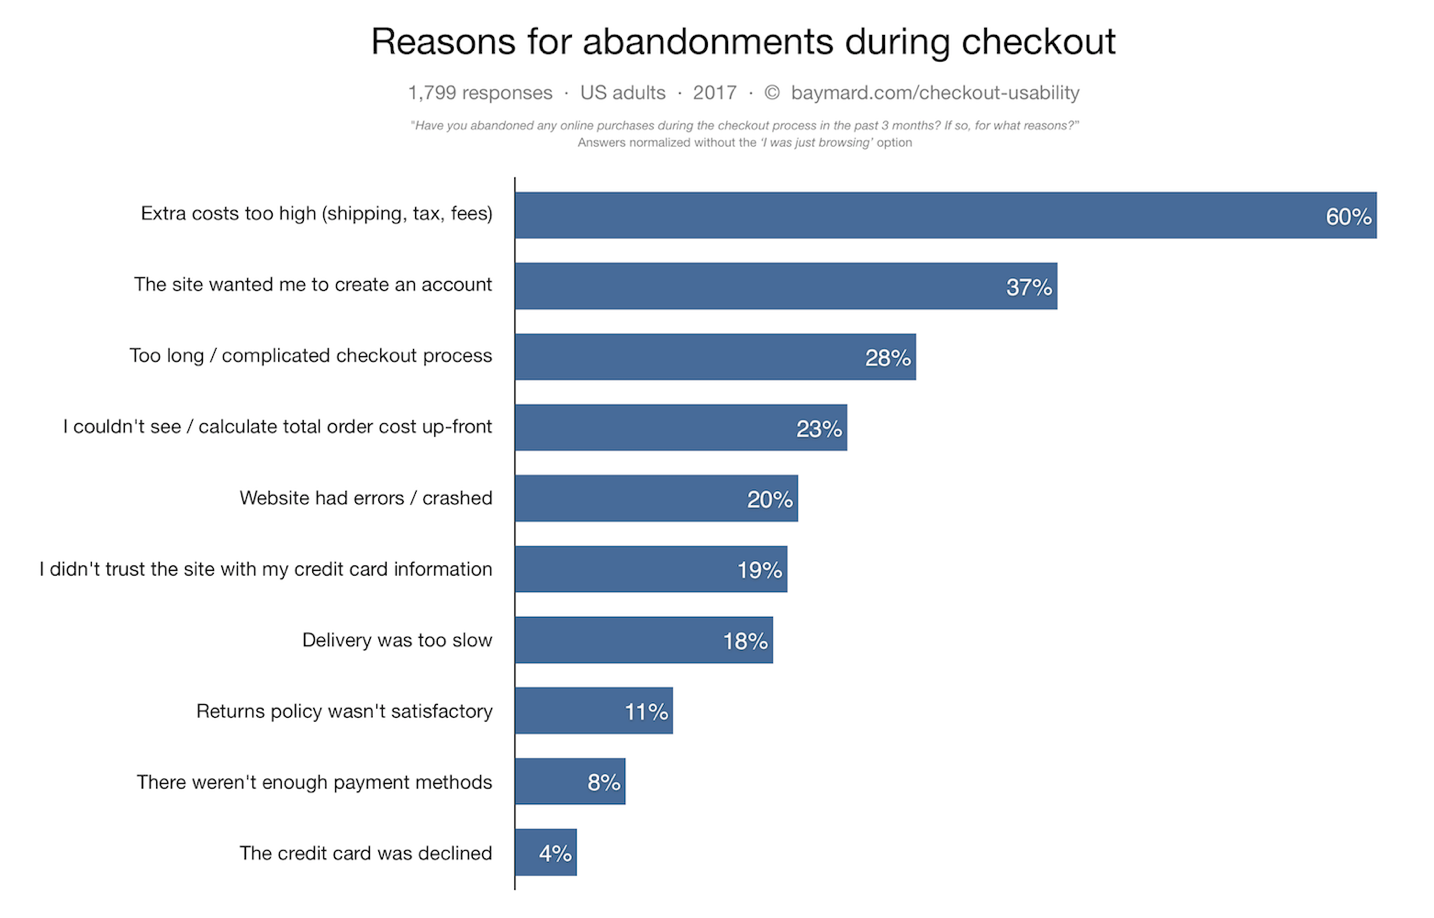 Graph of the reasons for abandonments during checkout